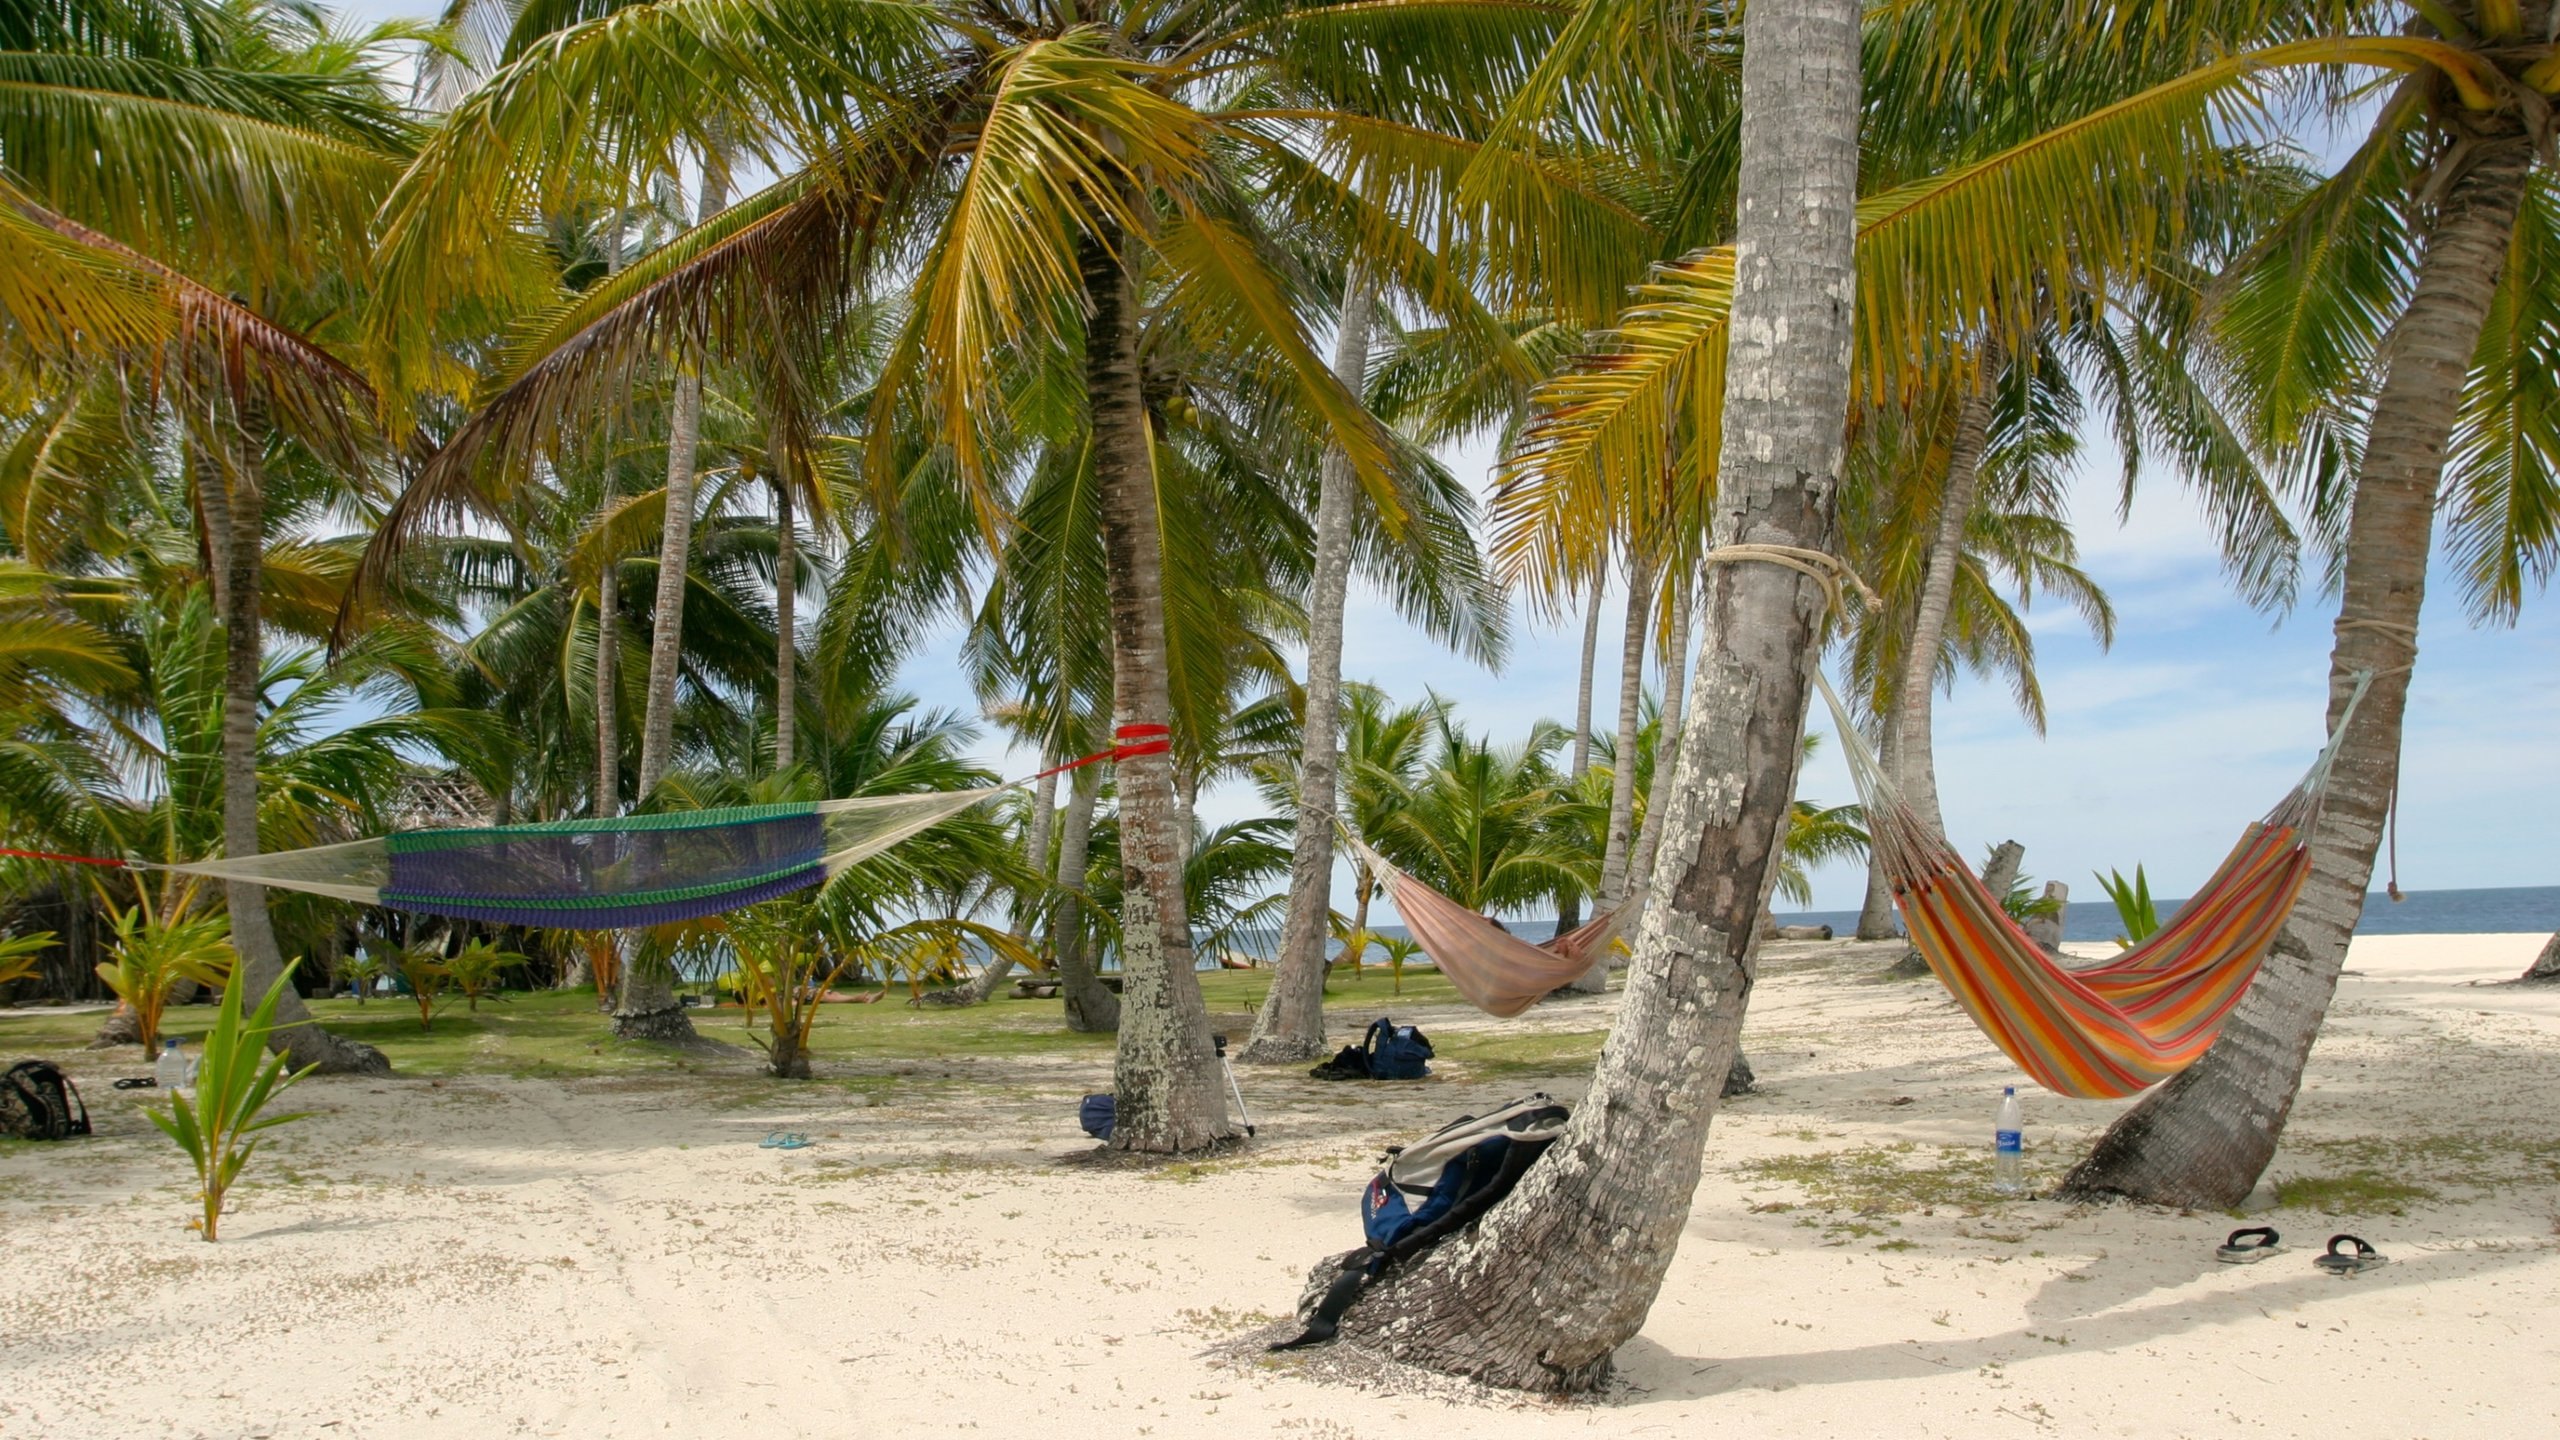 10 Best All Inclusive Resorts In Panama 139 Deals On -2167